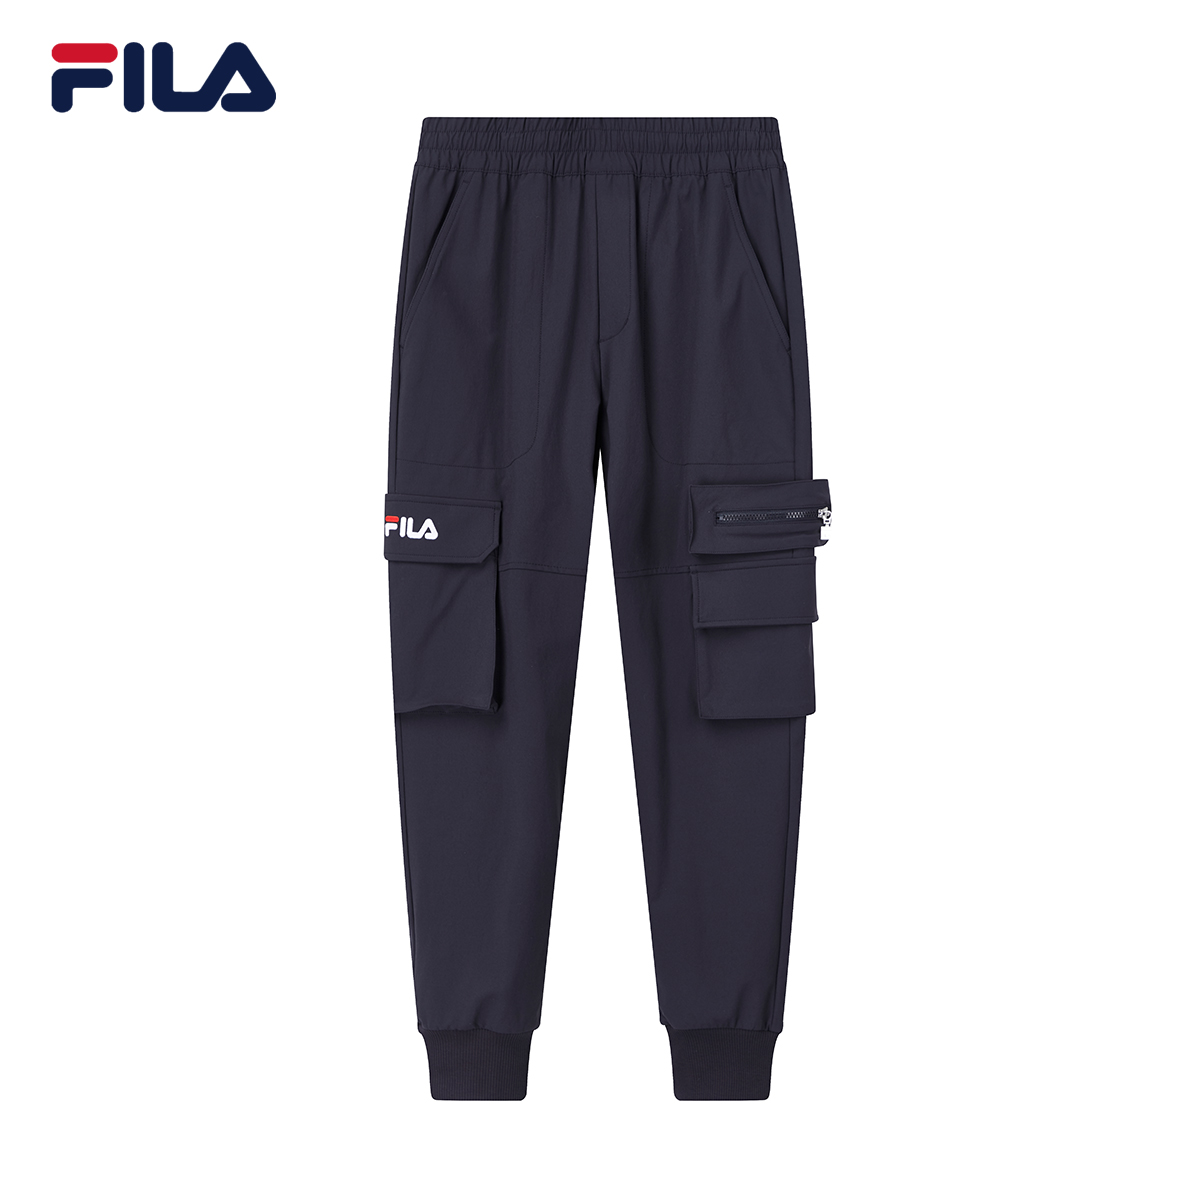 FILA FILA official men's tatting trousers new leisure work clothes pocket fashionable men's sports pants in spring 2020